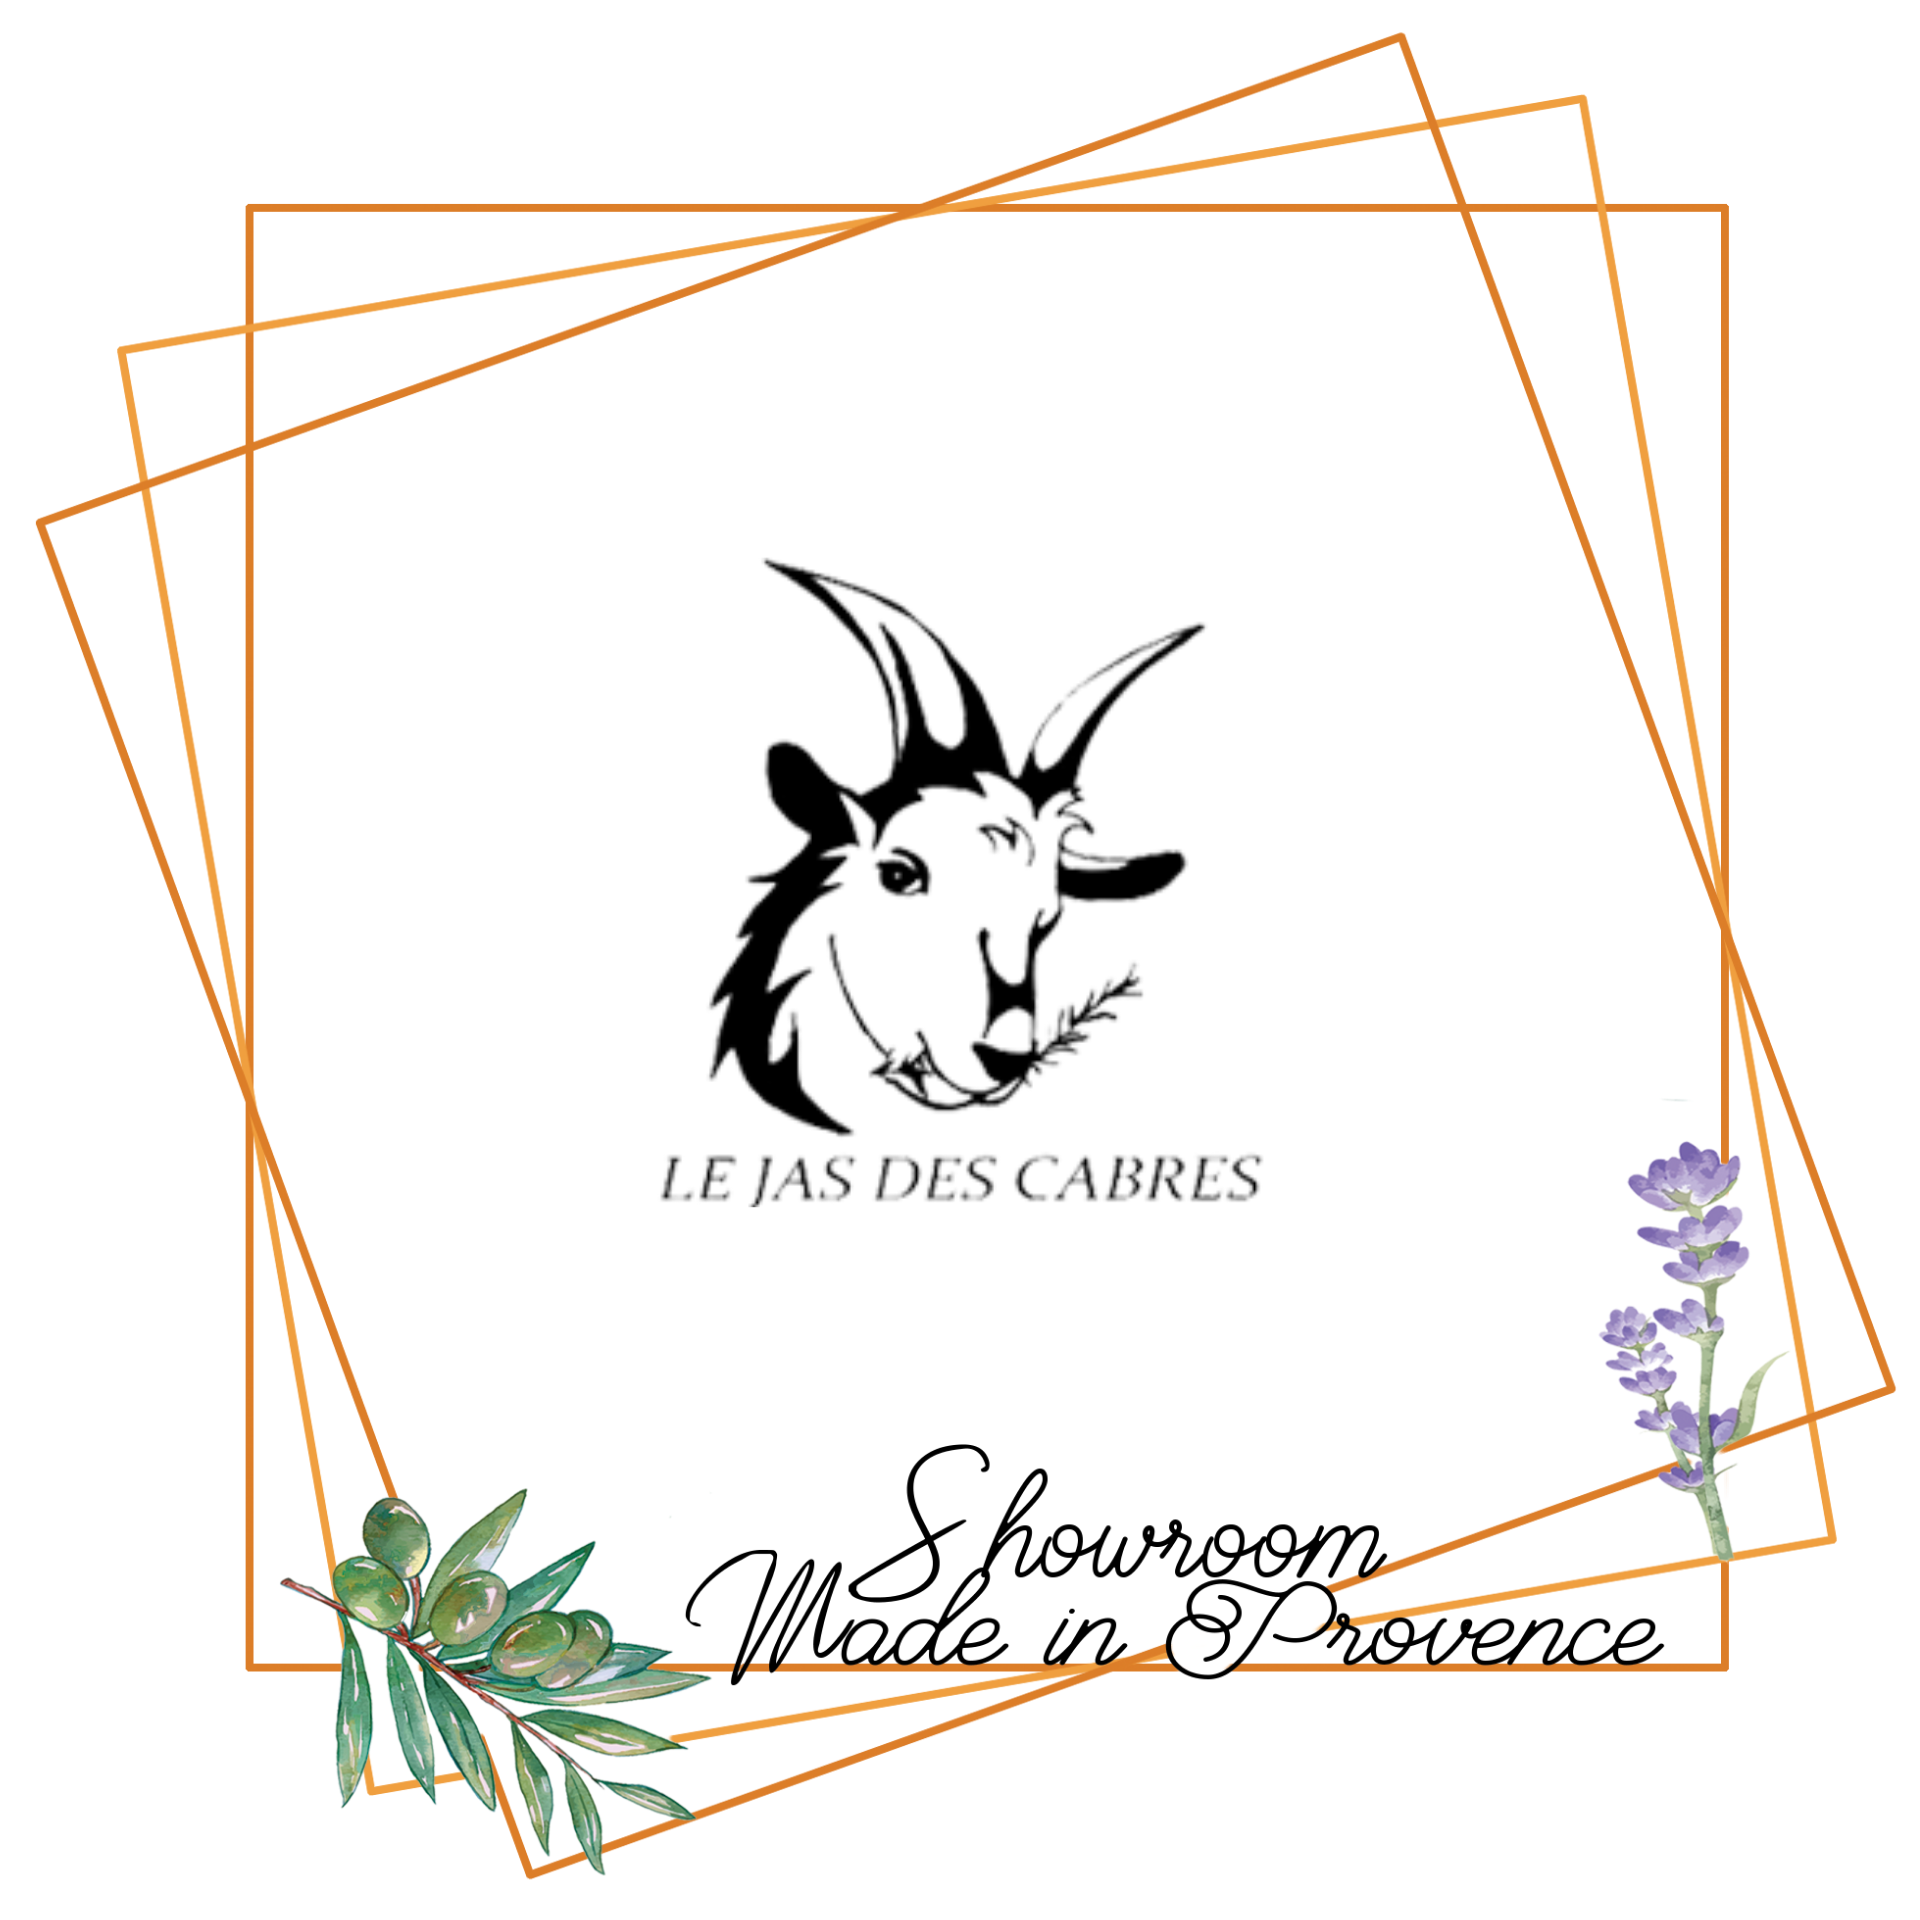 le jas des cabres showroom made in provence